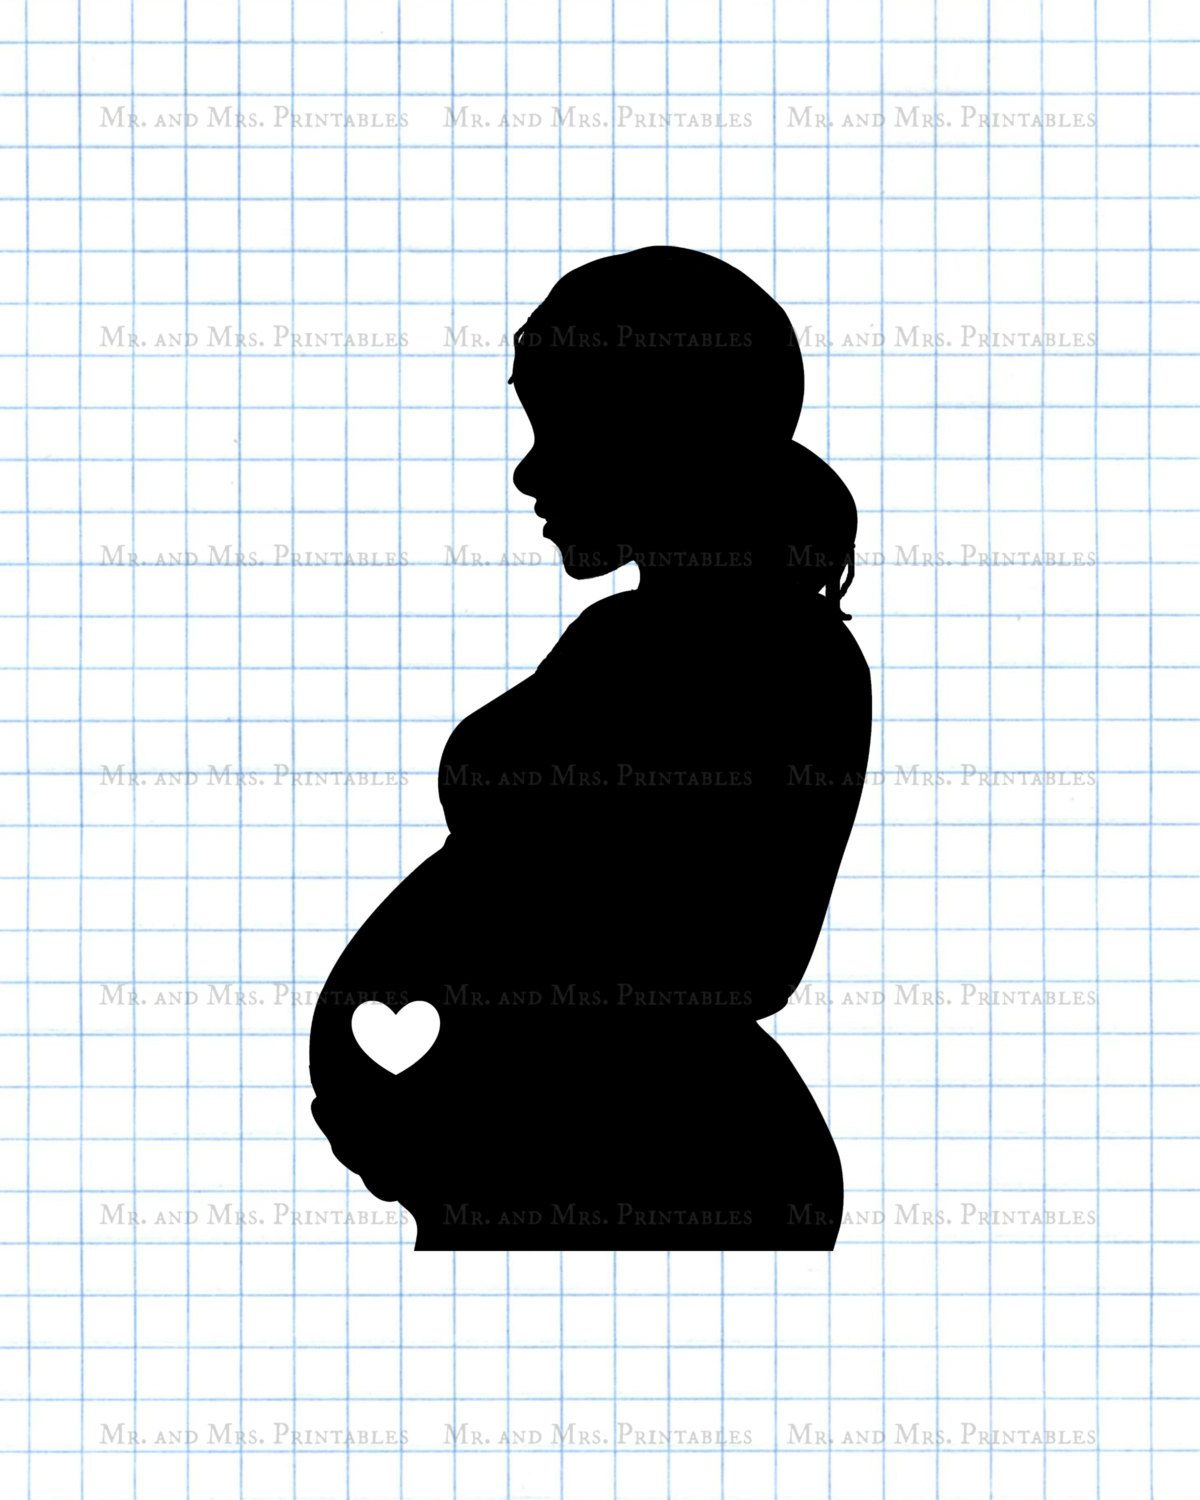 Pregnant clipart, pregnancy image, scrapbook images,belly.